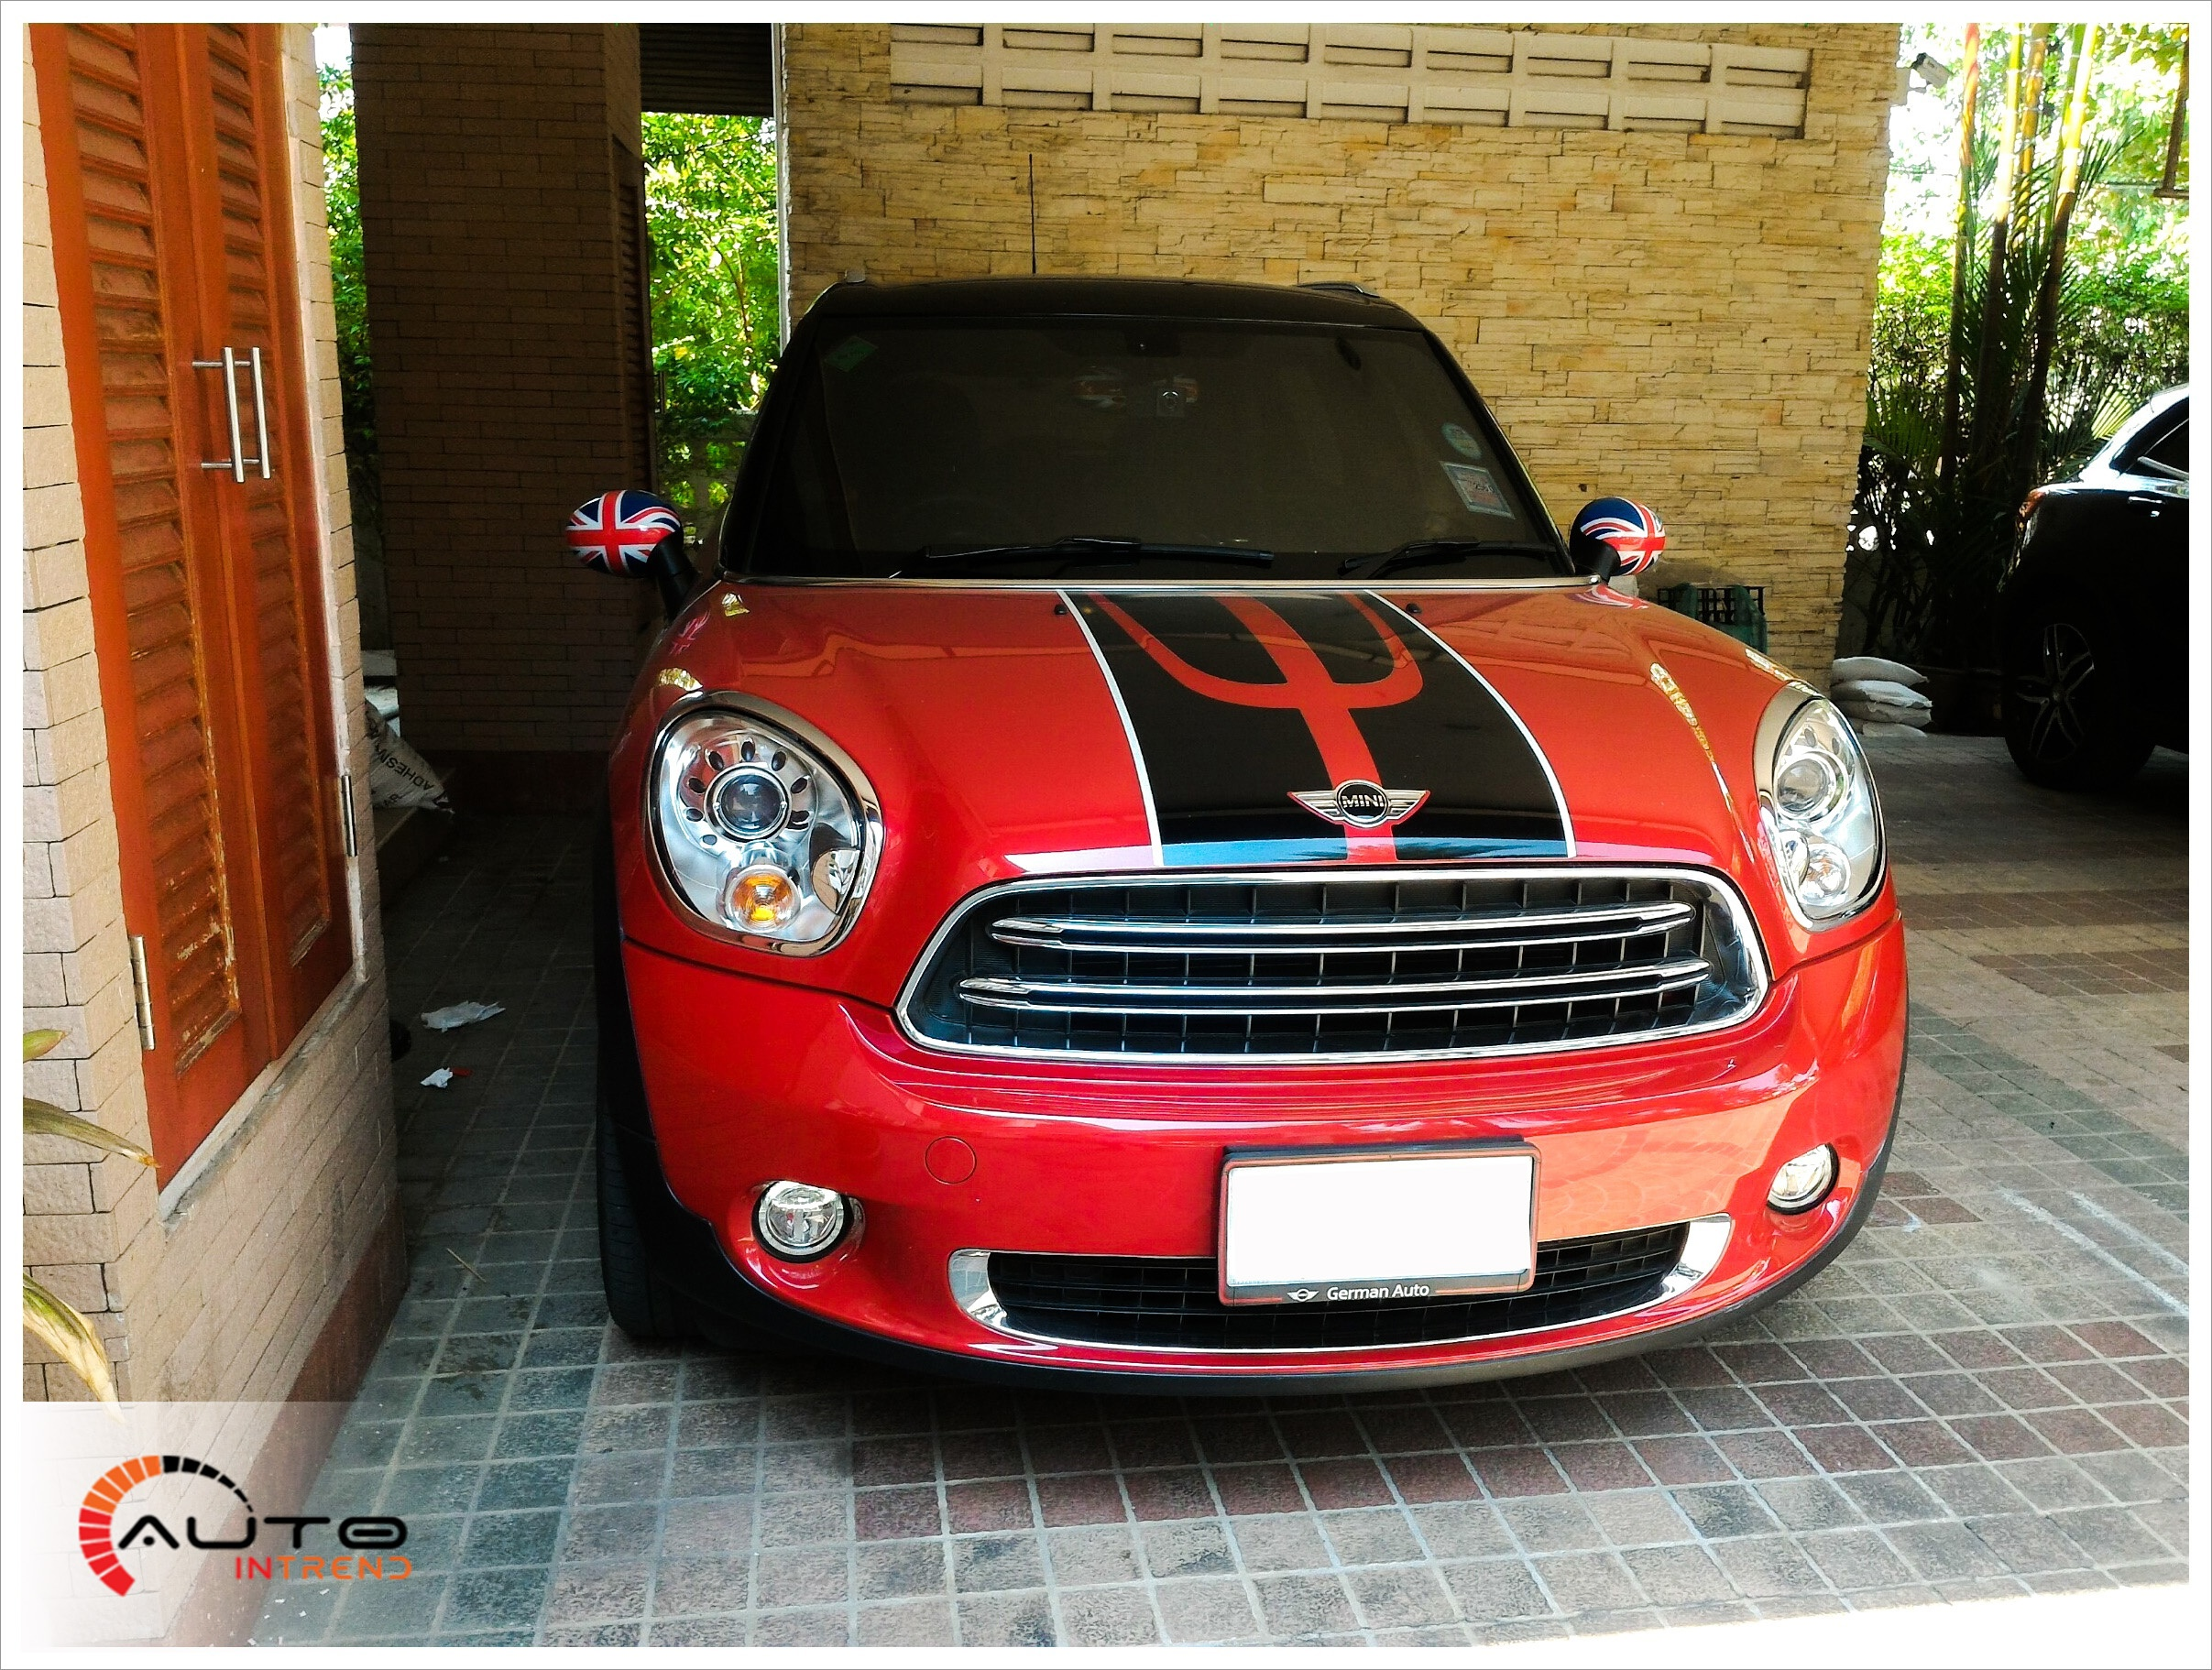 DVR_Thinkware_x550_Mini_Cooper D_20170221